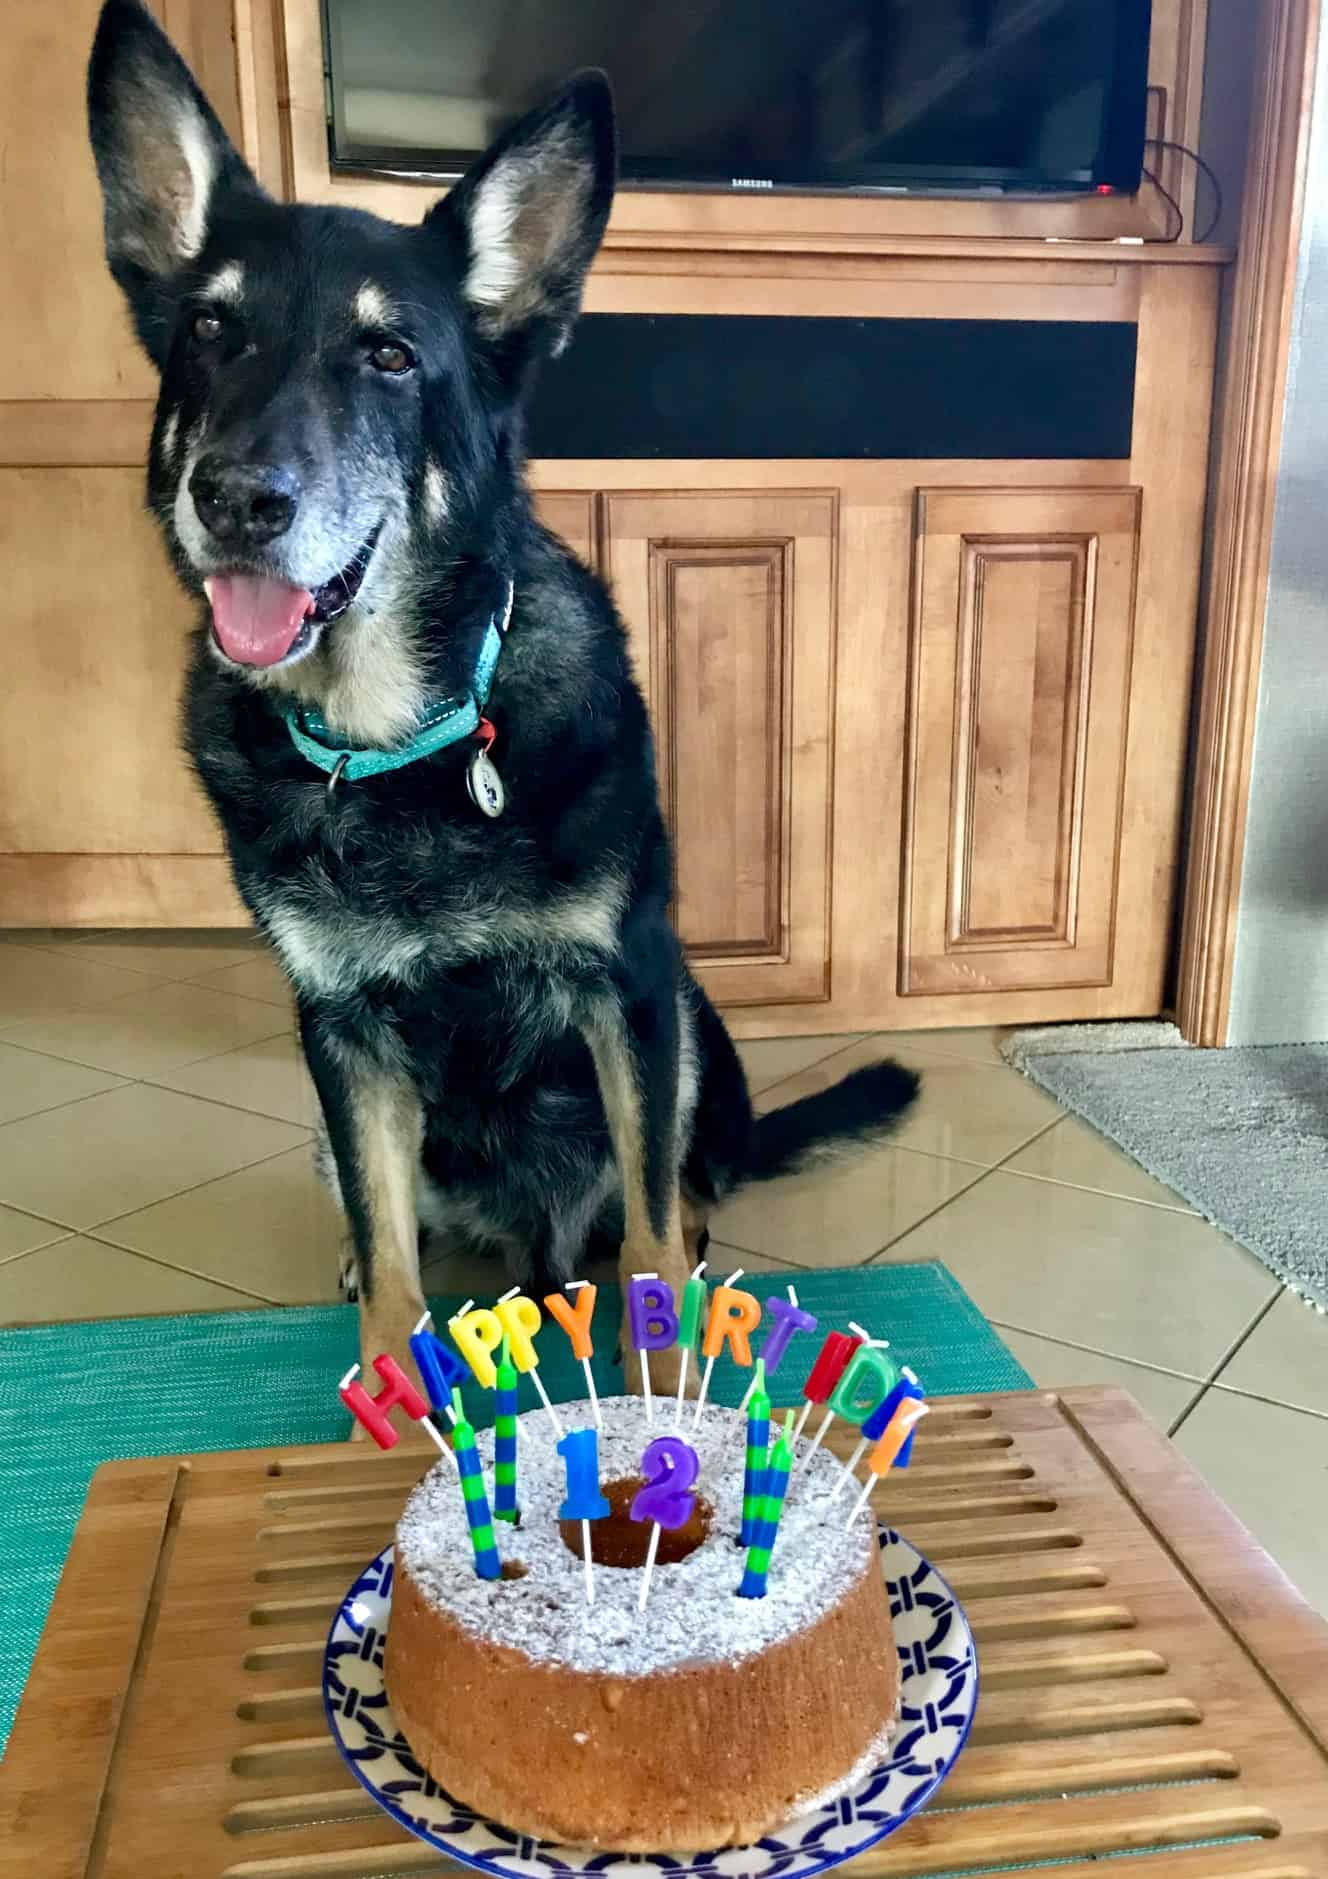 Buster the German Shepherd dog with a birthday cake on his 12th birthday